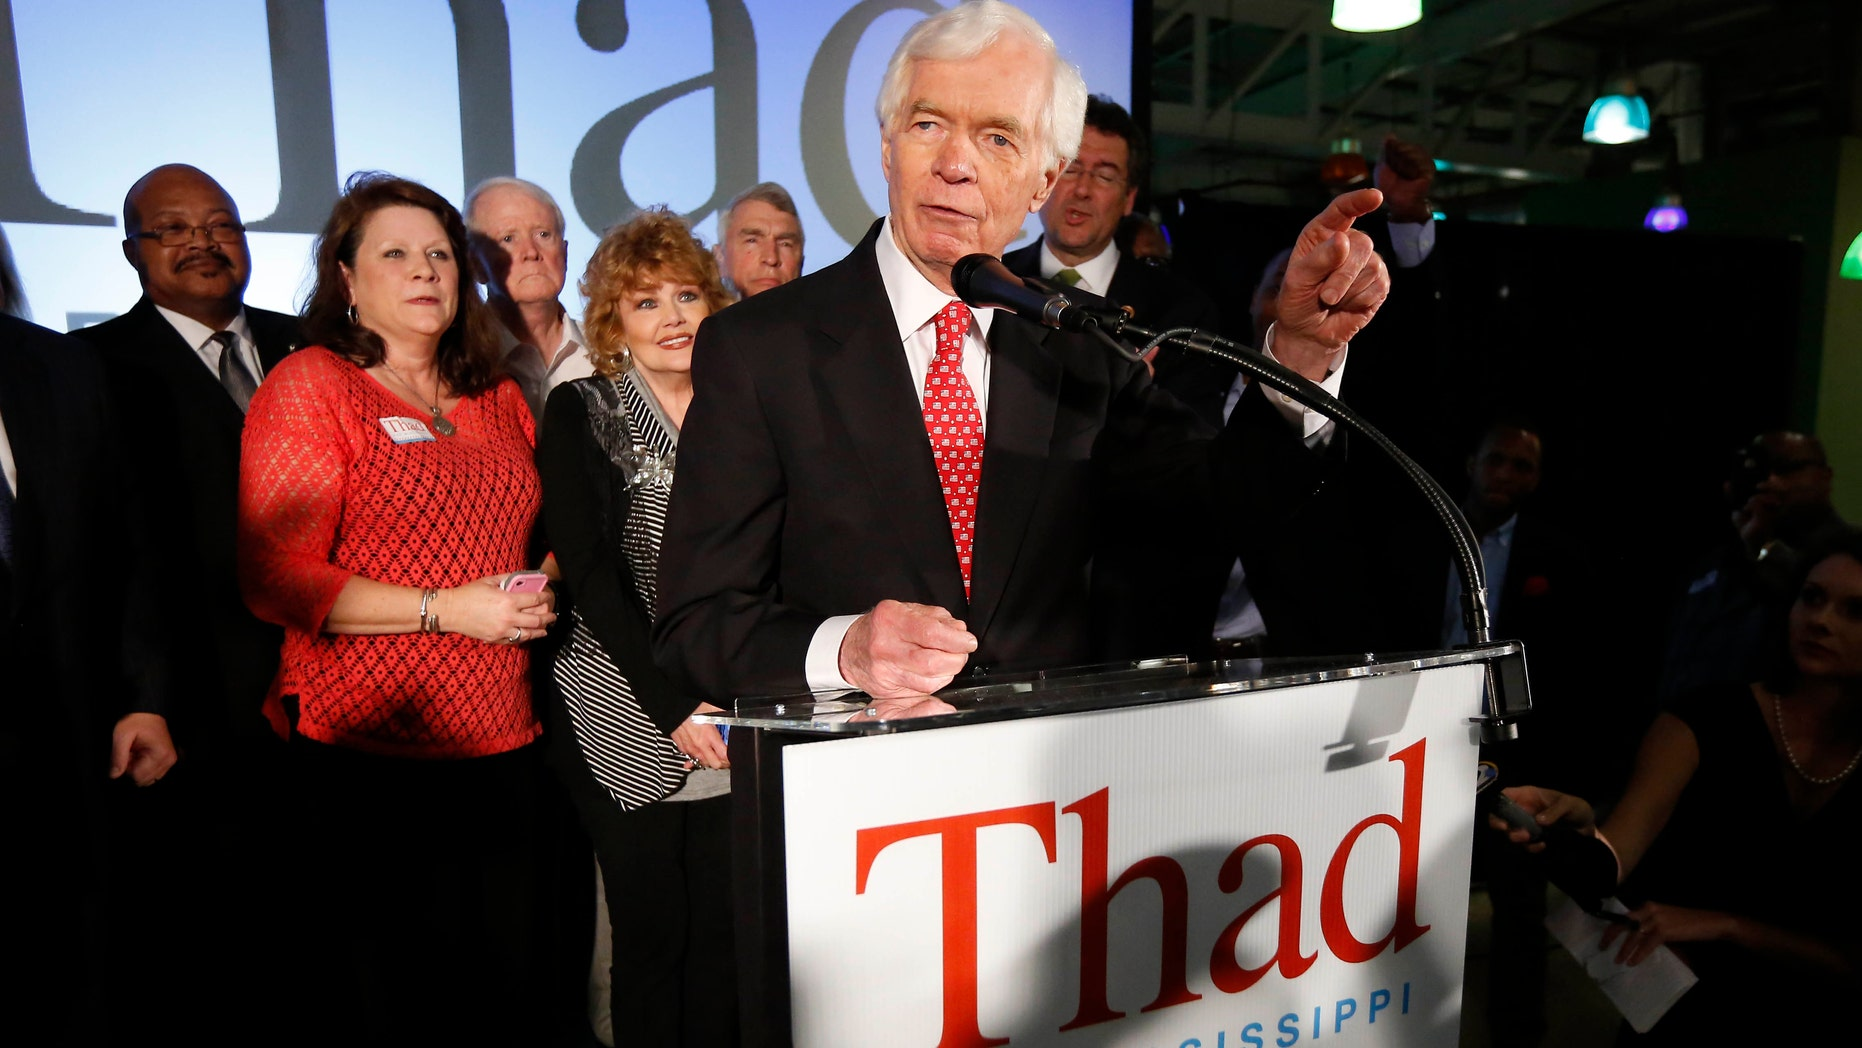 June 24, 2014: U.S. Sen. Thad Cochran, R-Miss., addresses supporters and volunteers at his runoff election victory party.